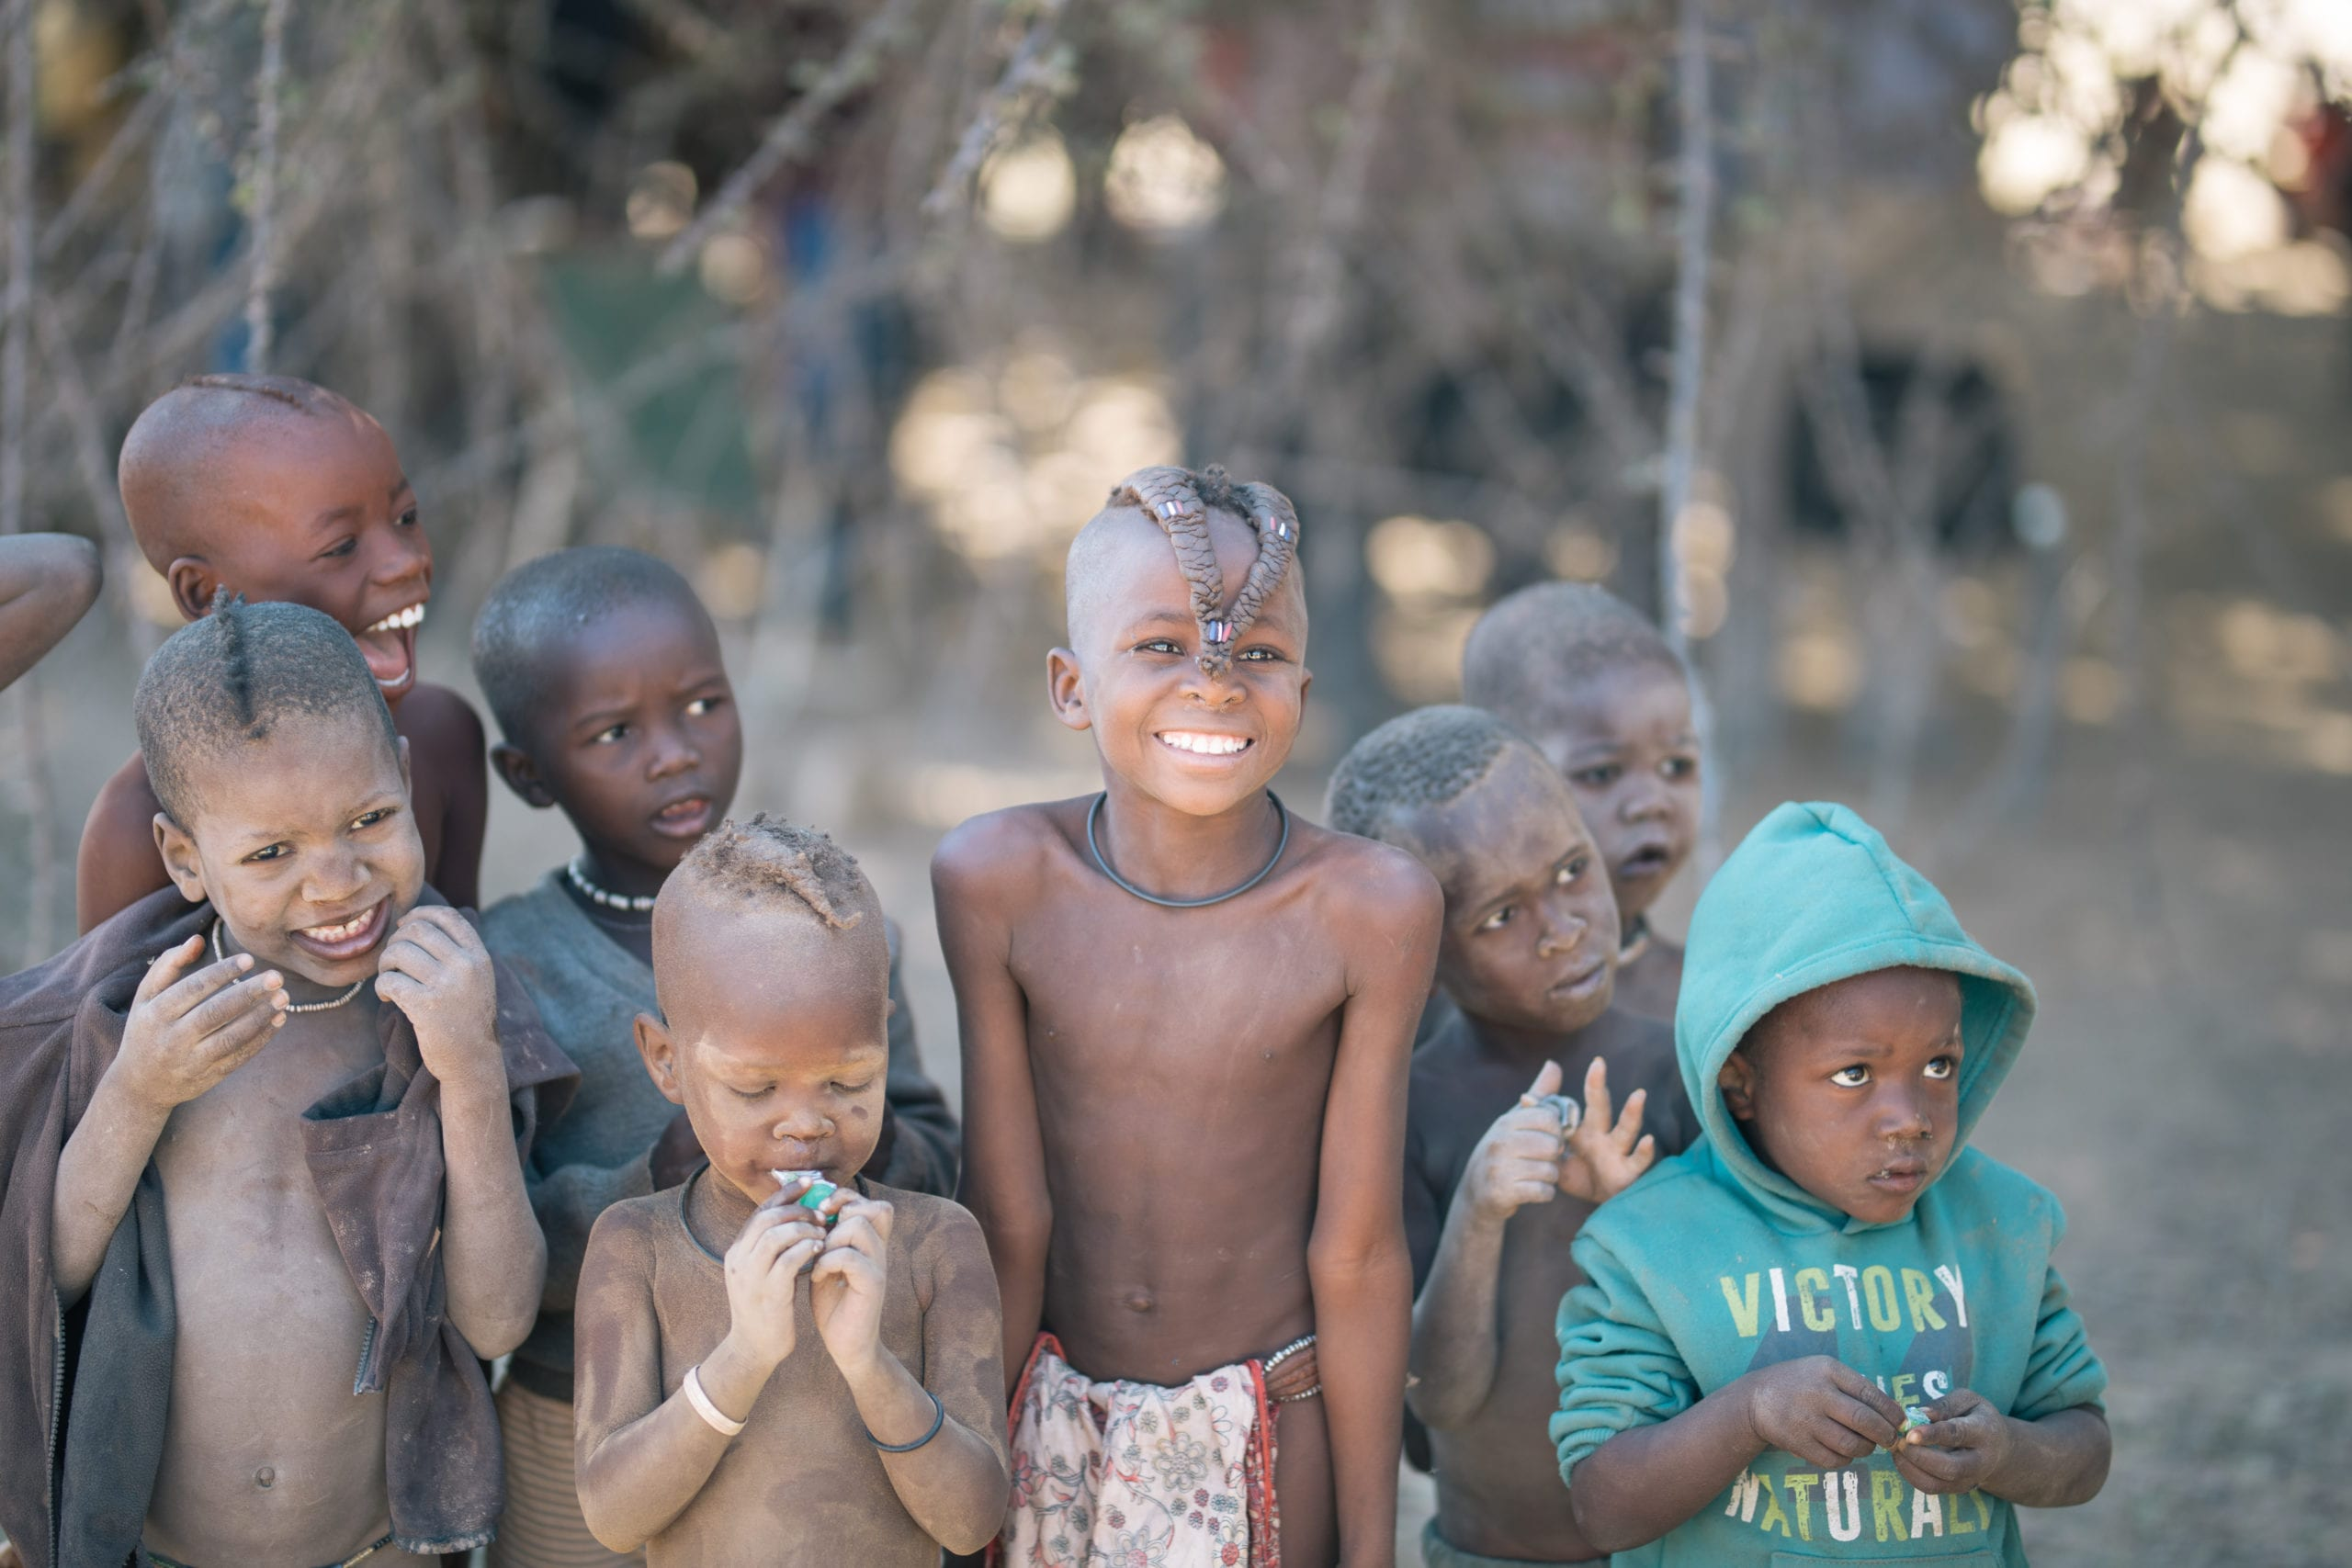 Young children in Namibia